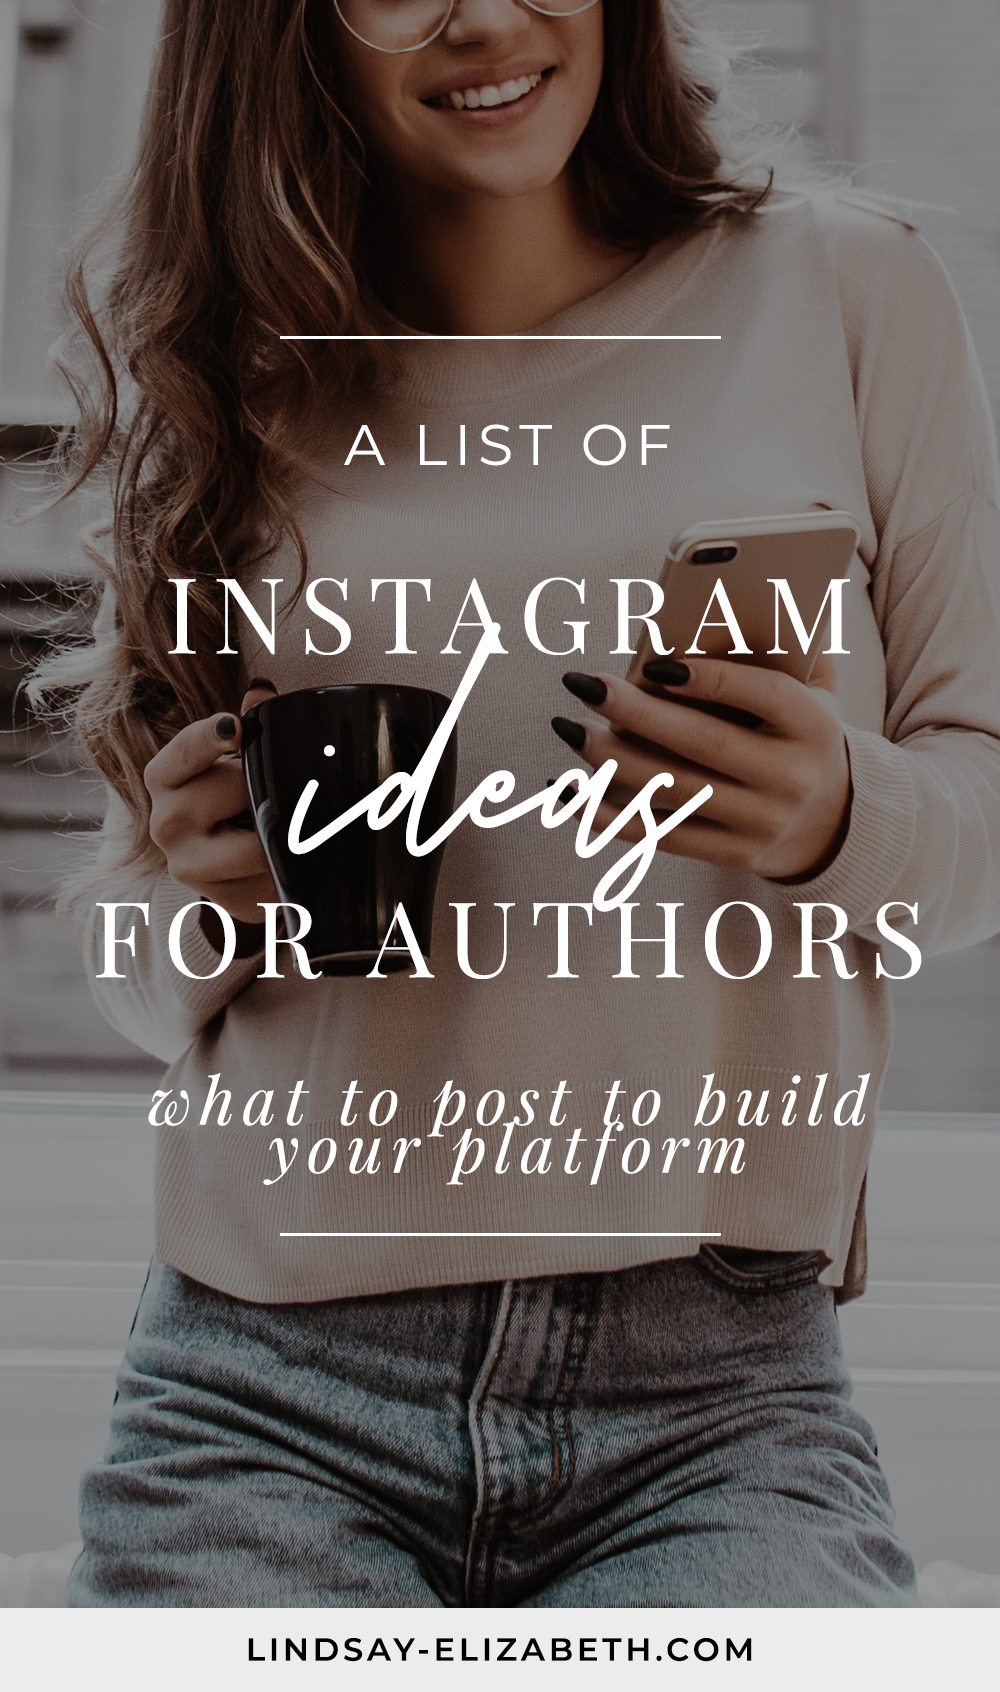 """If you're just starting to set up your social media for your author platform, you may be wondering, """"What the heck do I post on Instagram as an author?"""" To get your ideas flowing, here is a list of some tried and true Instagram ideas for authors, as well as tips on how to create content that will build genuine connections. #authorplatform #writerplatform #authors #writers"""